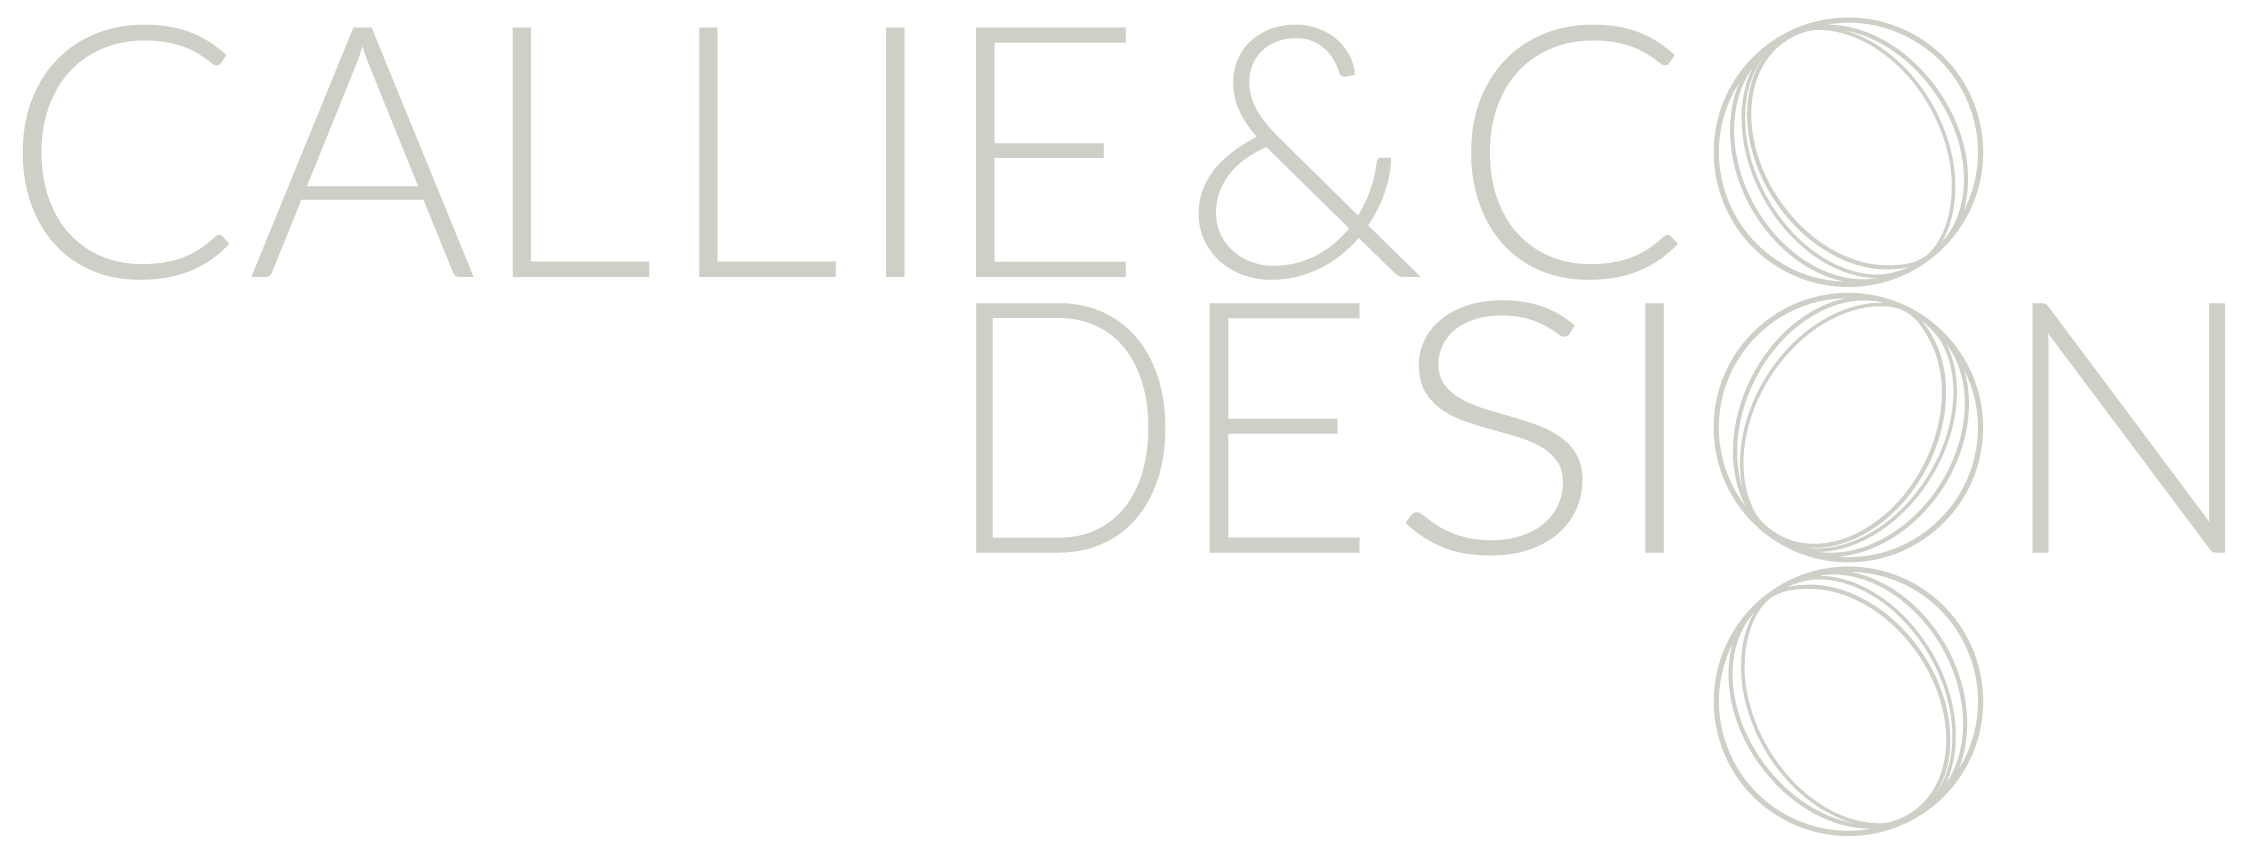 Callie & Co Design